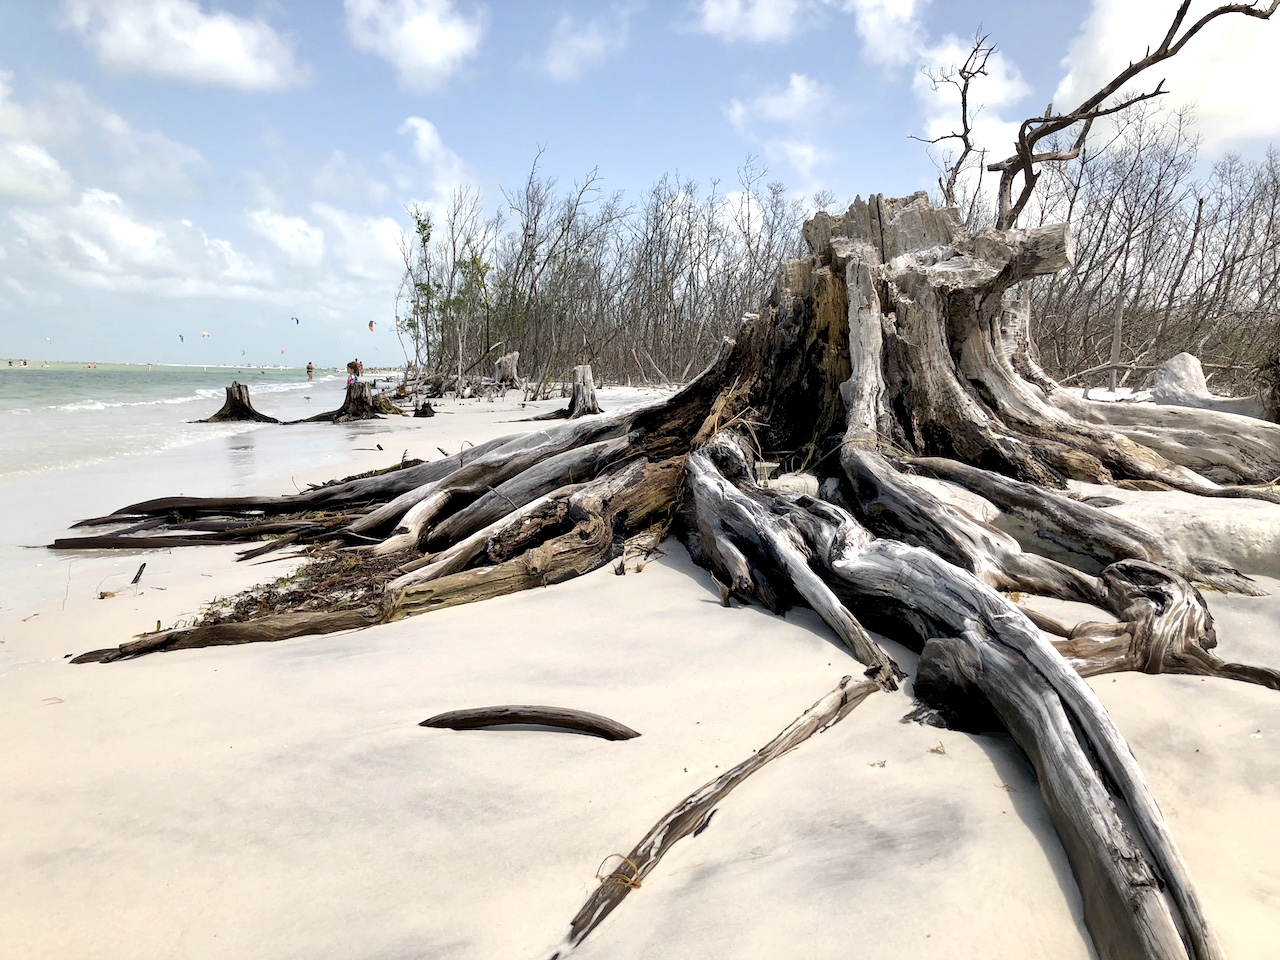 The nature is everywhere at Fort de Soto park, all the way to the beach itself